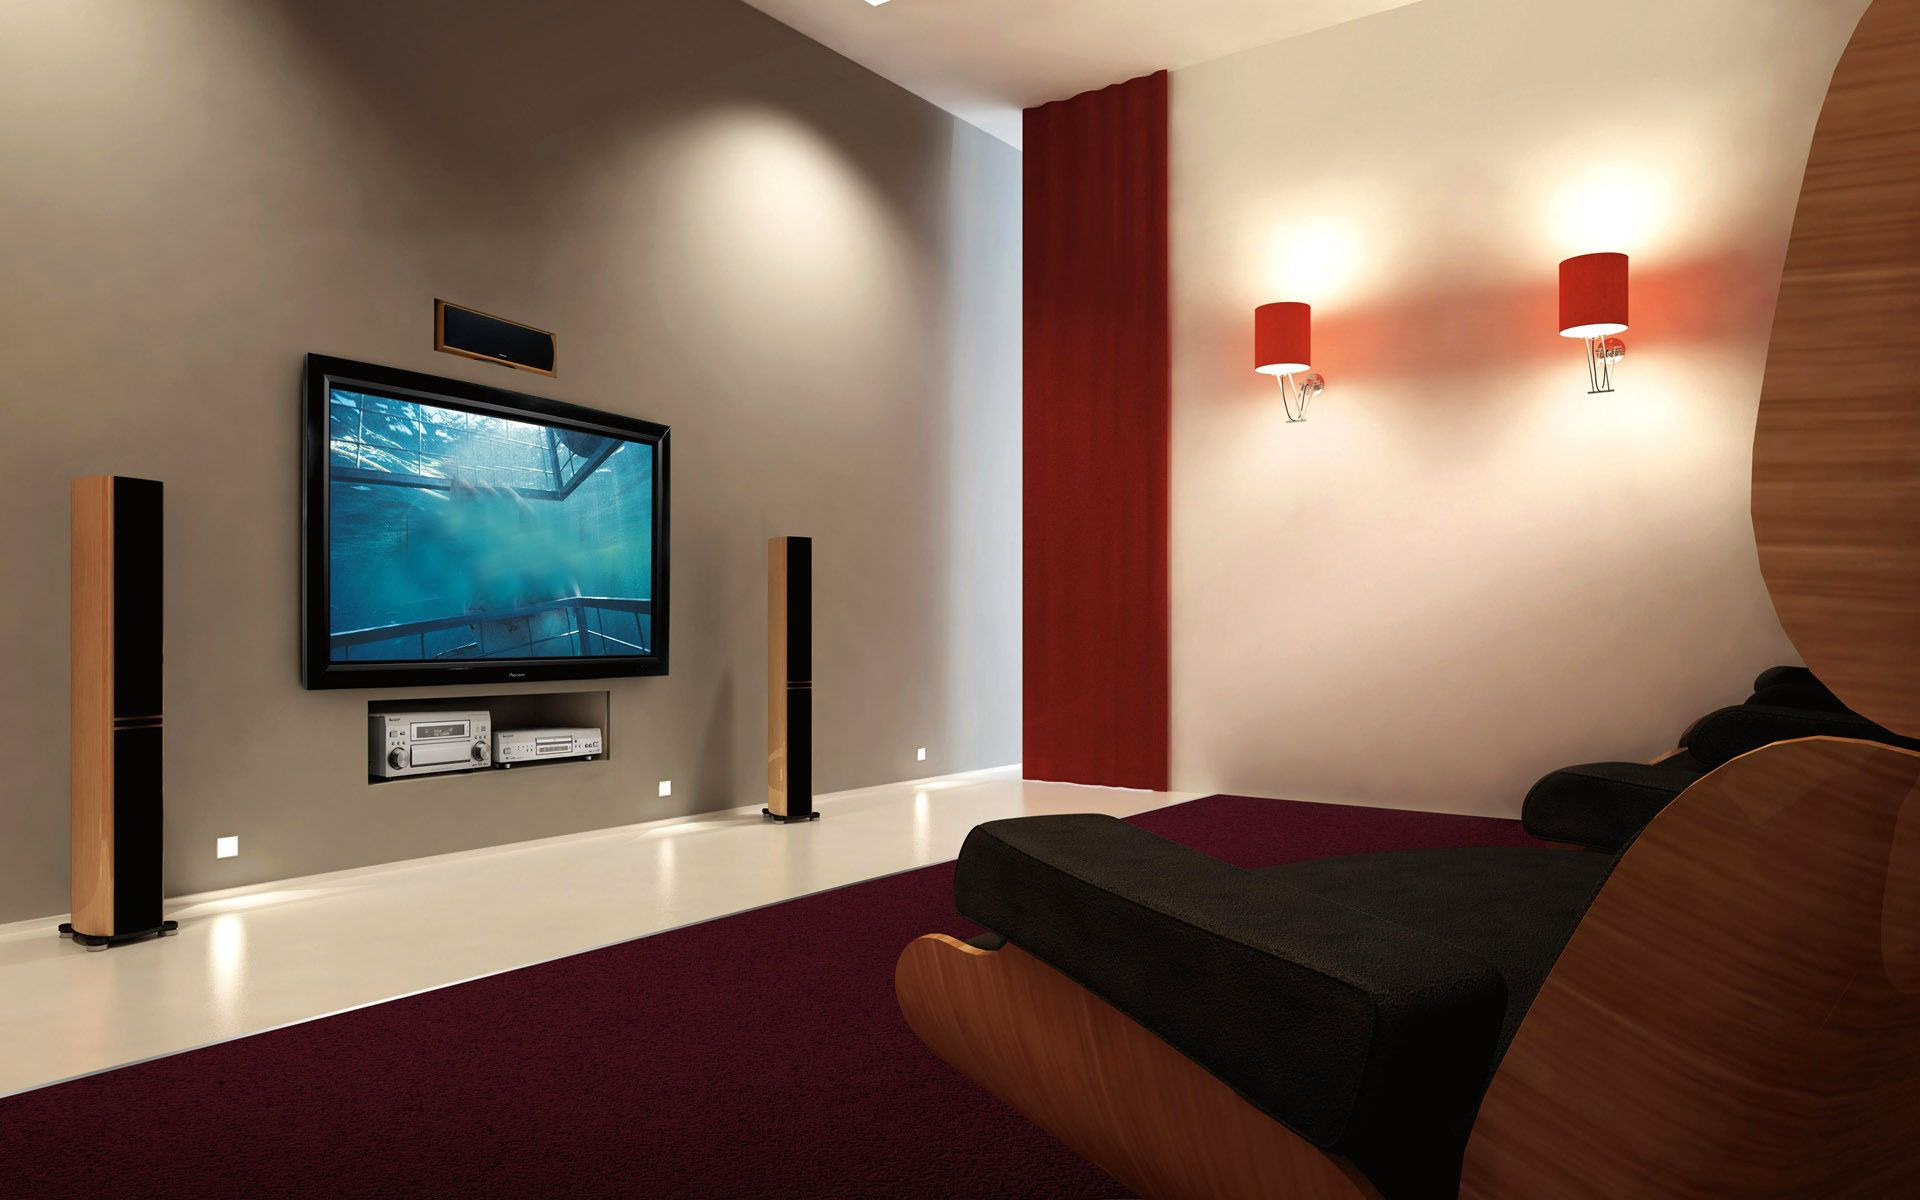 Living Room Home Theater System Design Ideas Home Design Ideas Tv Wall Mount Installation Swivel Tv Wall Mount Samsung Tv Wall Mount